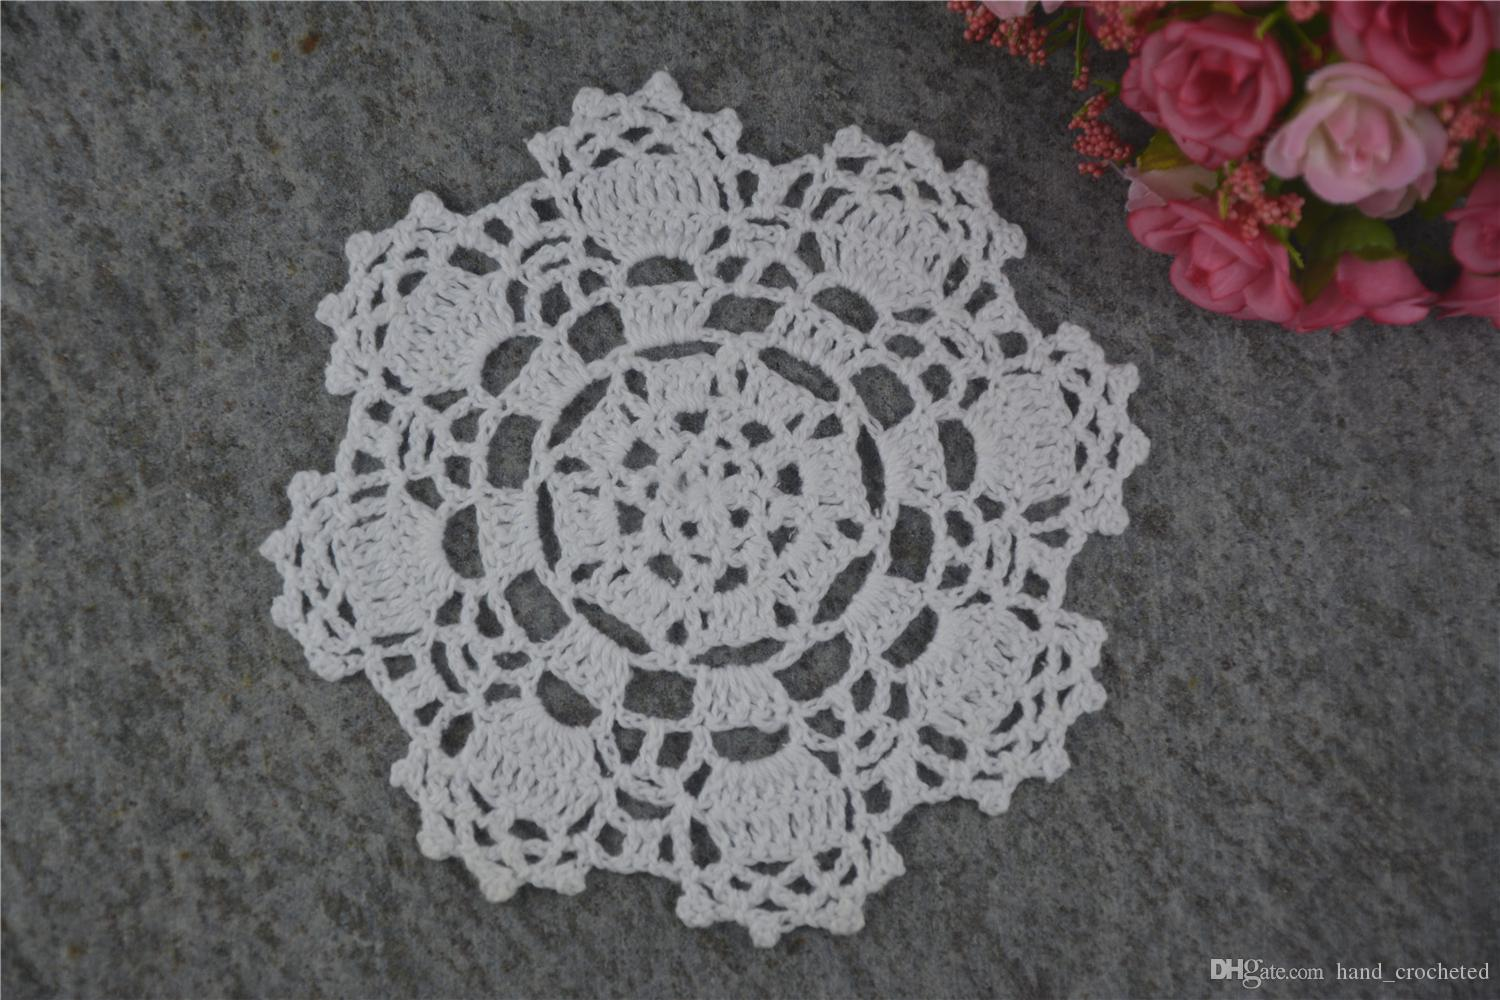 DIY Design Wedding Handmade Crochet Coasters Doily Placemats Crocheted Doilies Size 5 inches / Custom Color _DSC0048